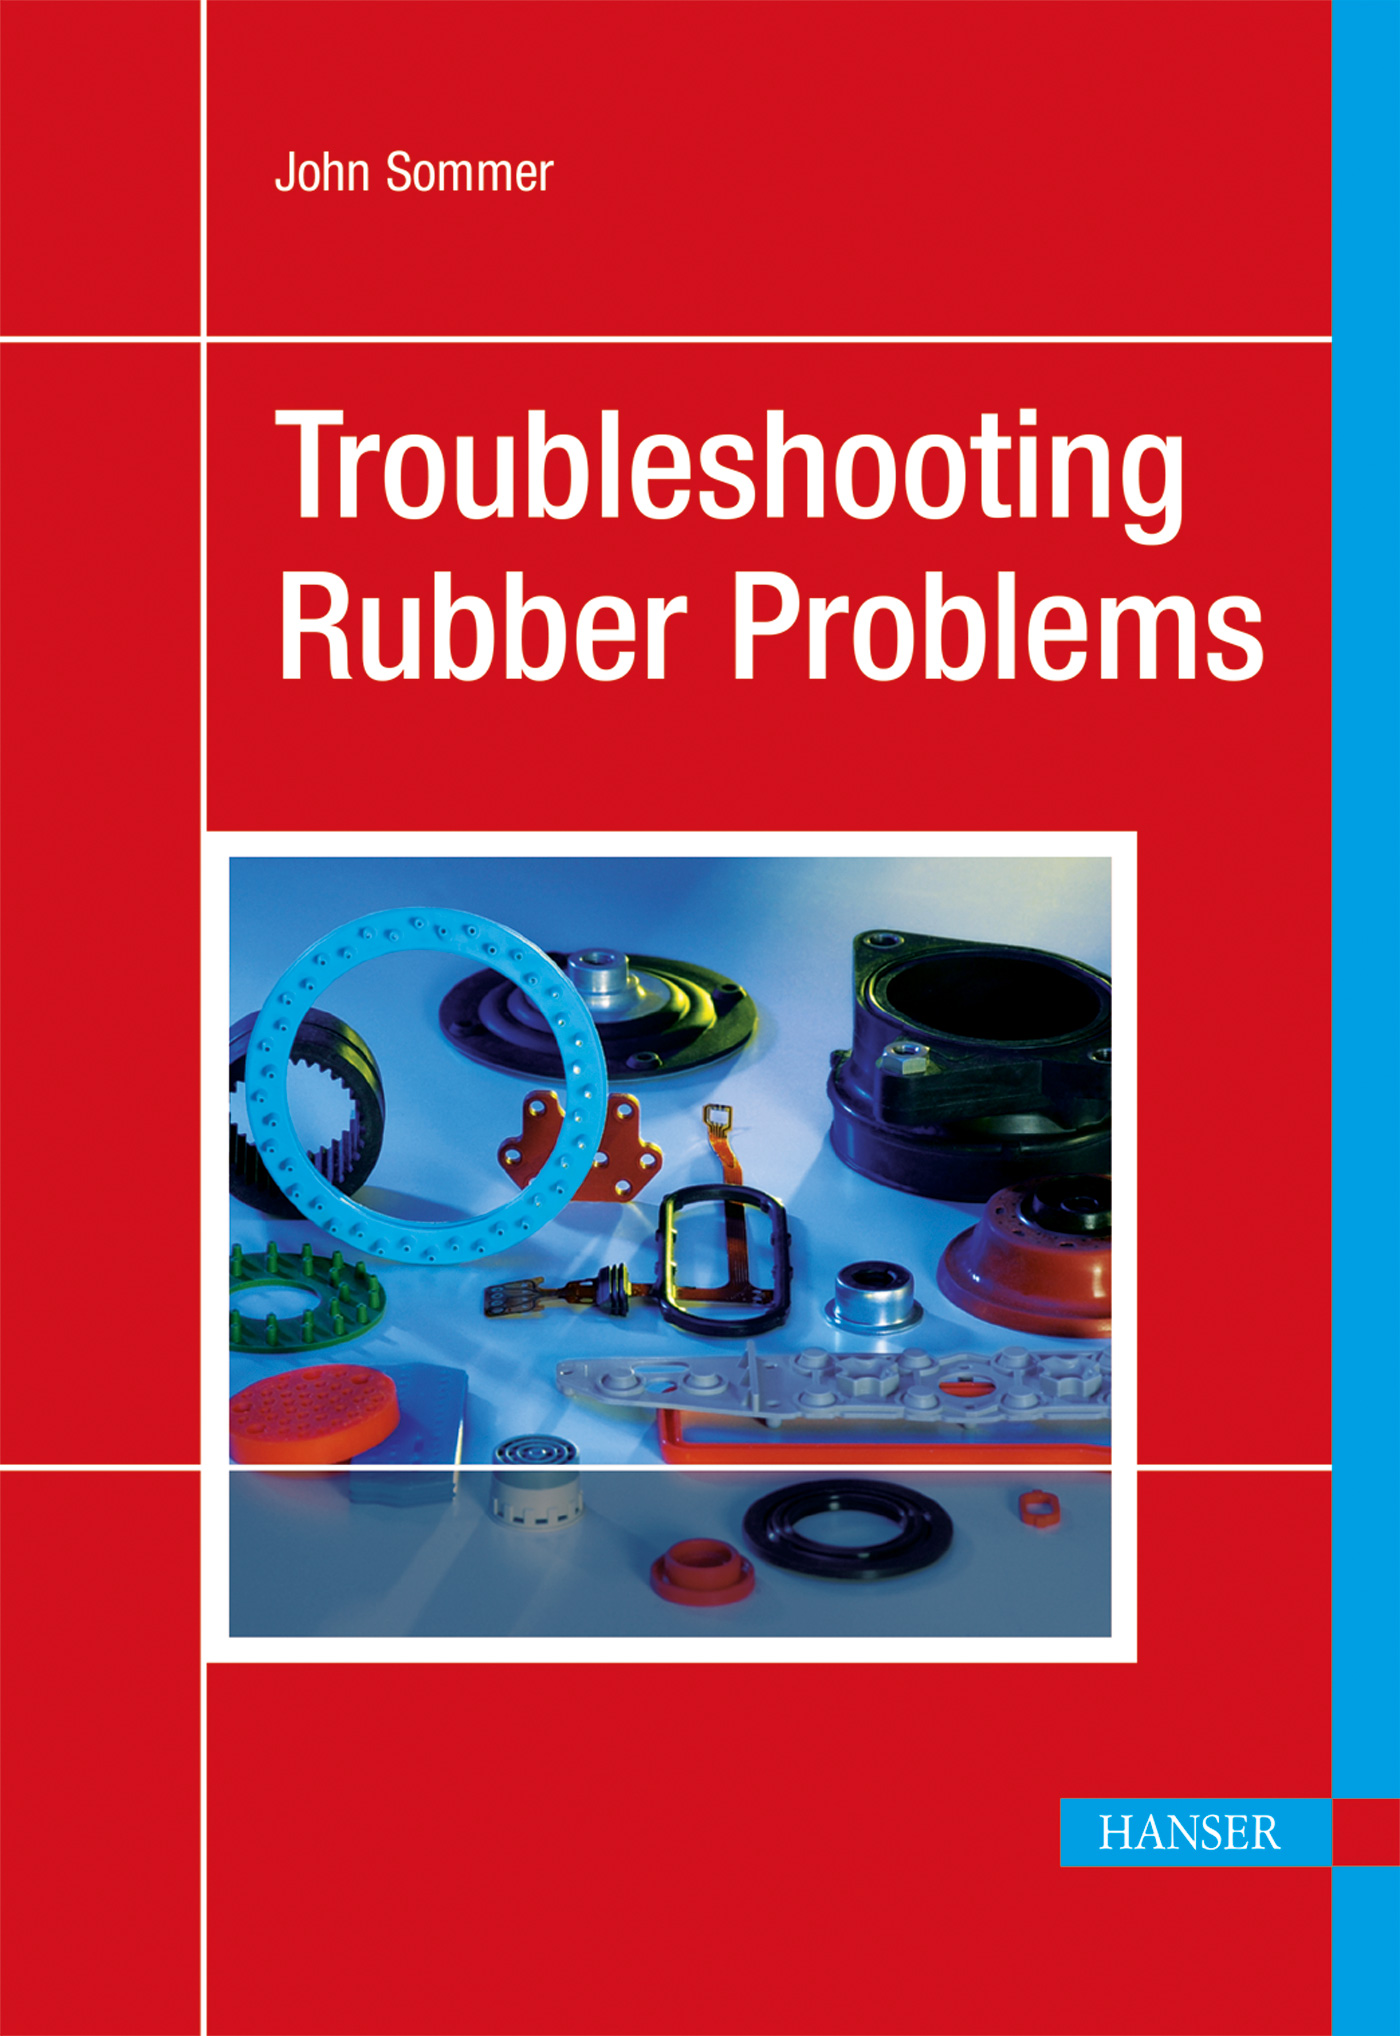 Sommer, Troubleshooting Rubber Problems, 978-1-56990-553-1